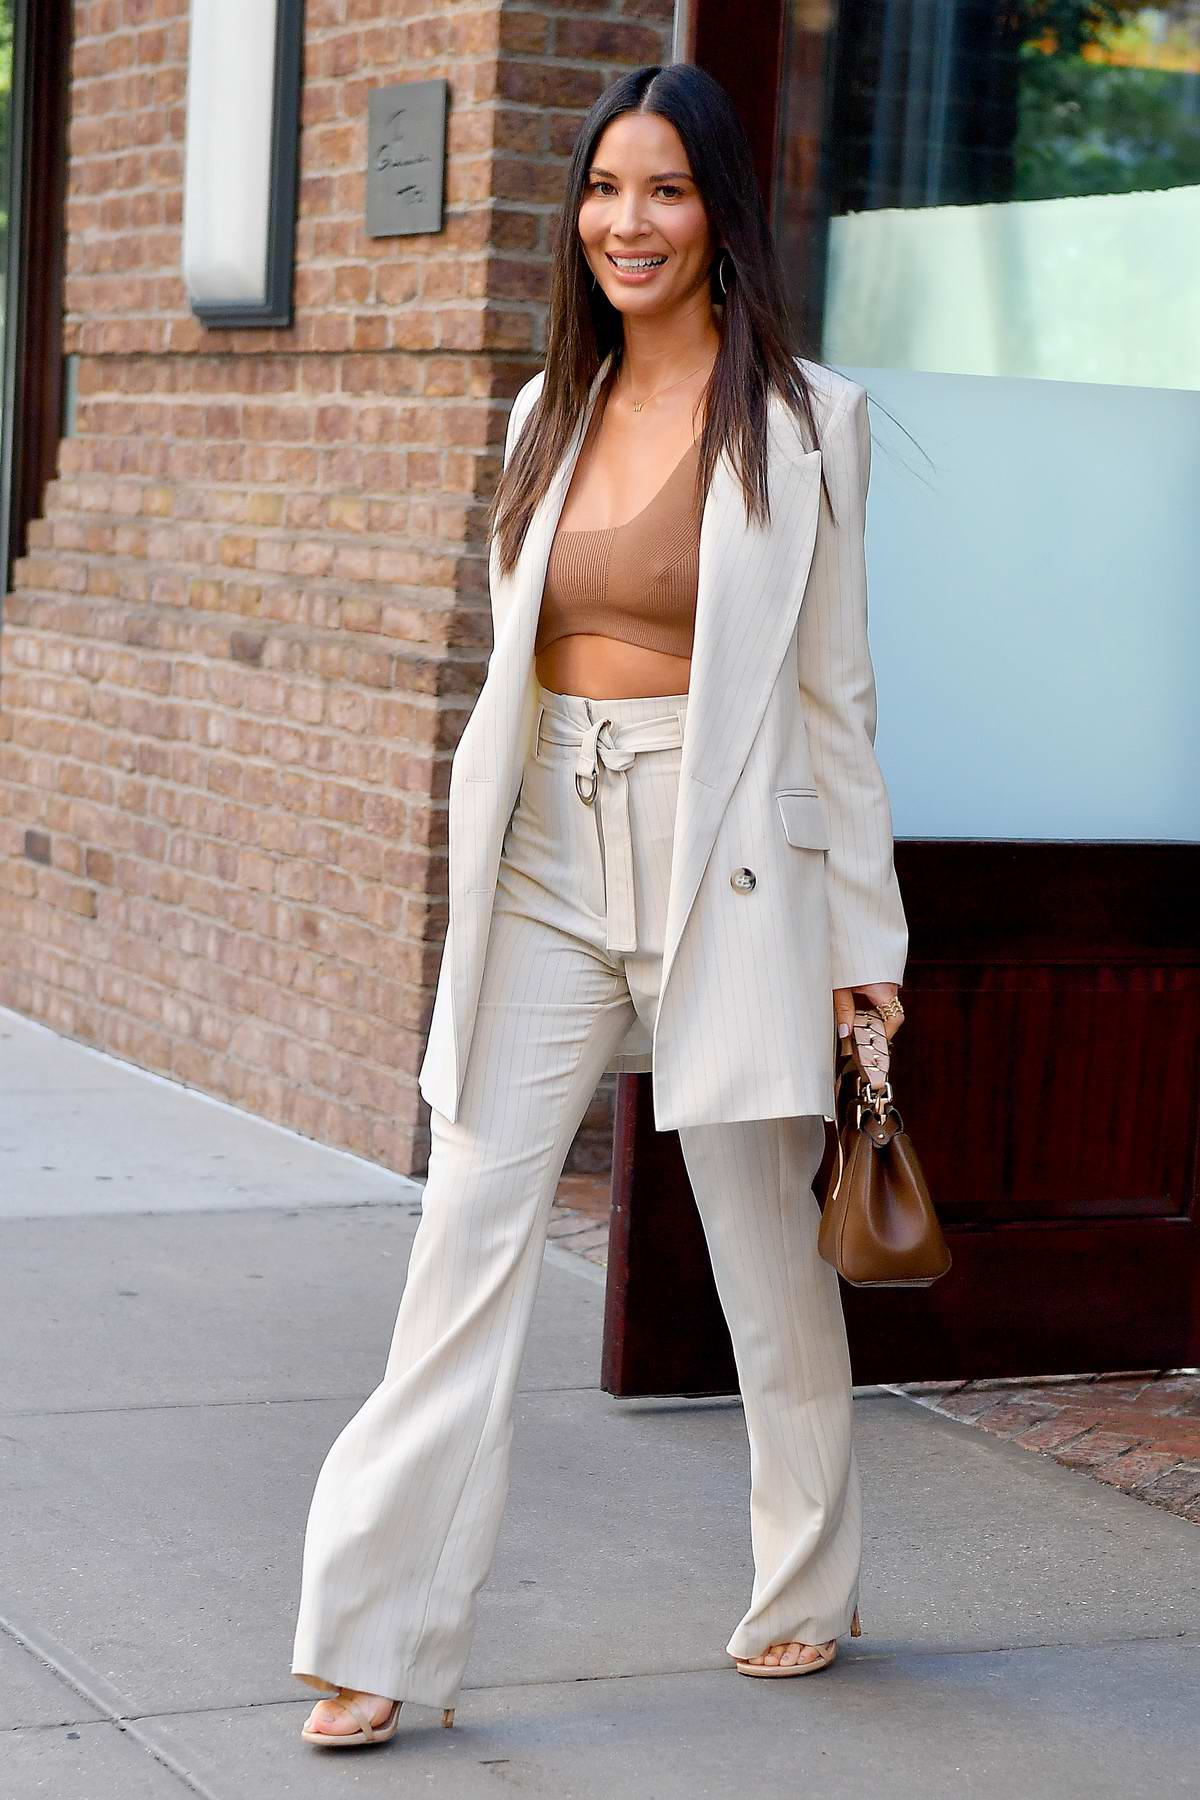 Olivia Munn steps out in a brown crop top and cream suit in New York City